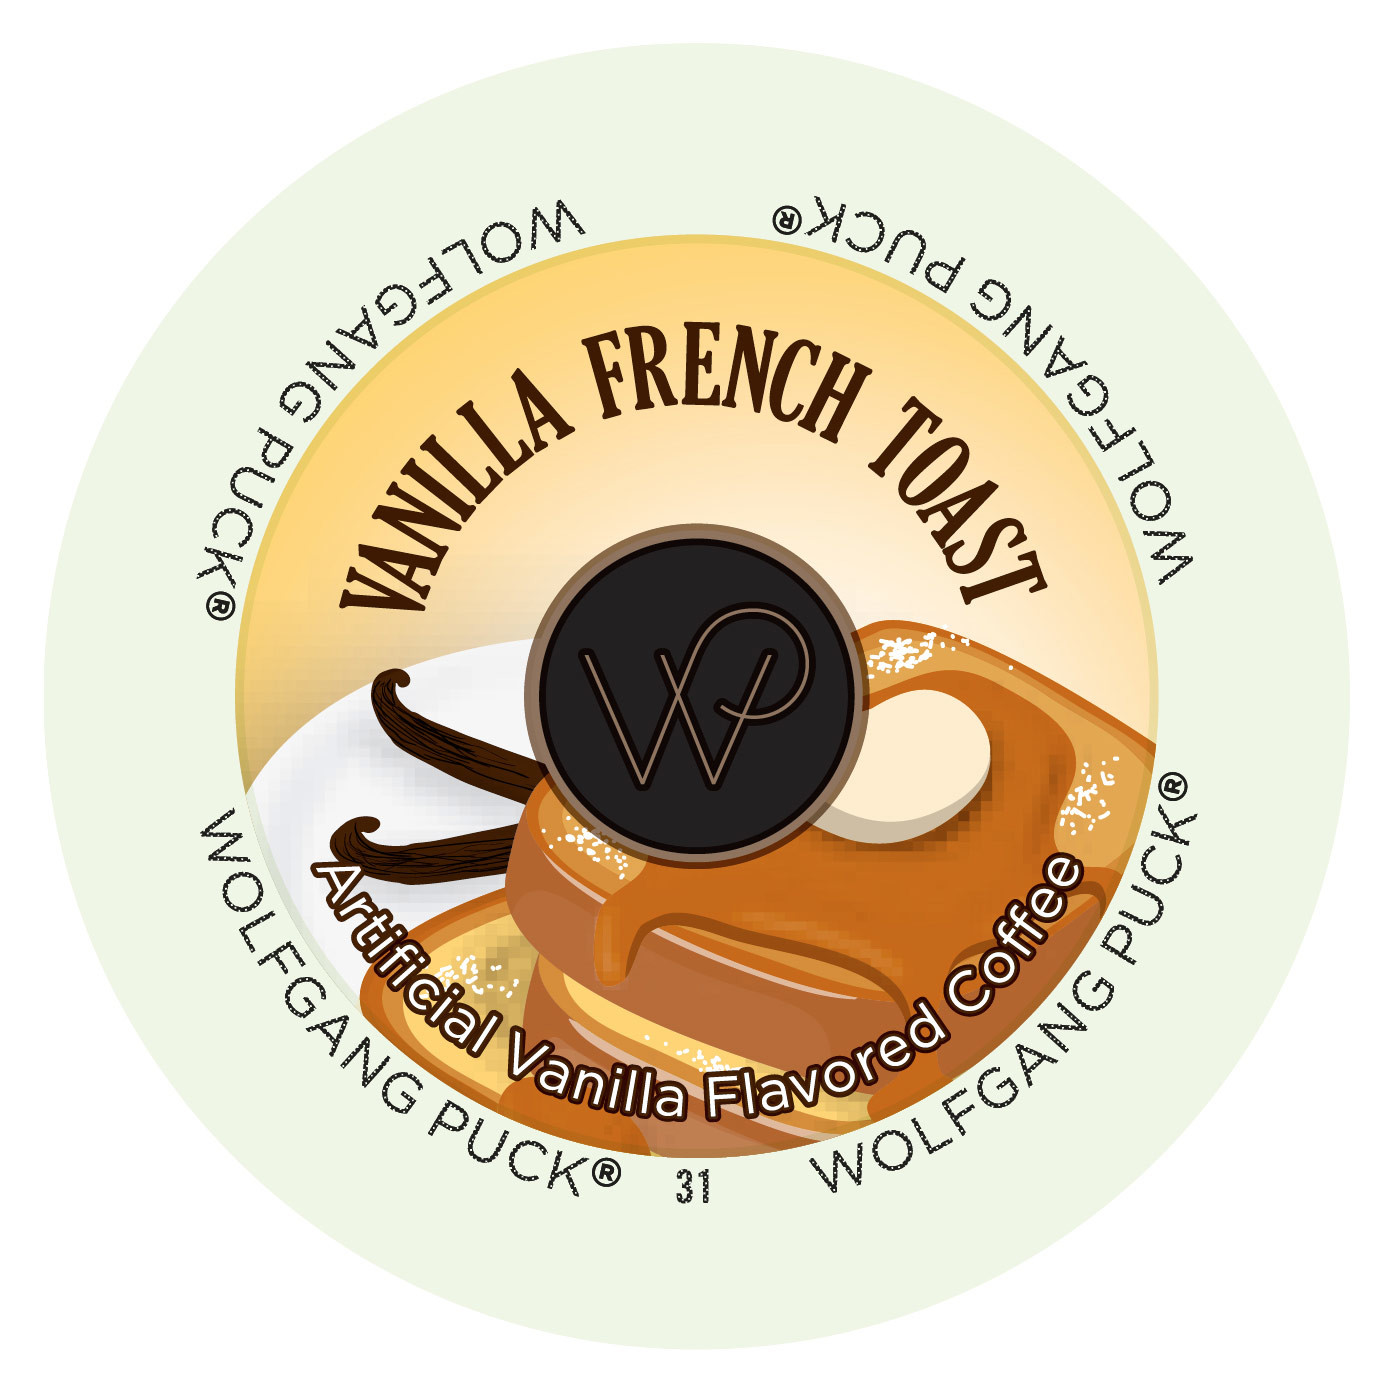 Wolfgang Puck Vanilla French Toast, RealCup portion pack for Keurig K-Cup Brewers, 24 Count